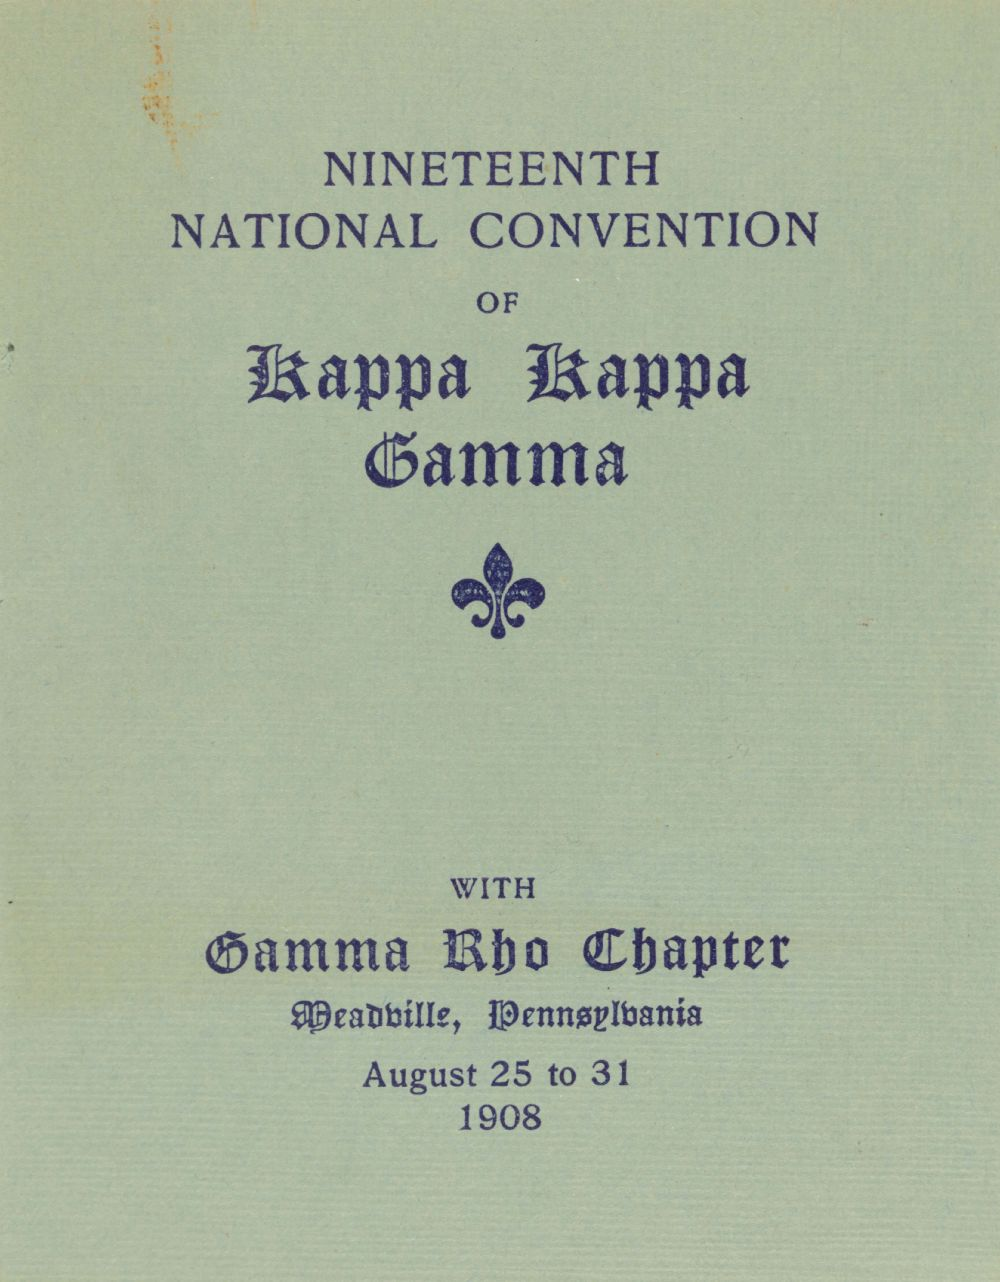 Image, 1908 National Convention